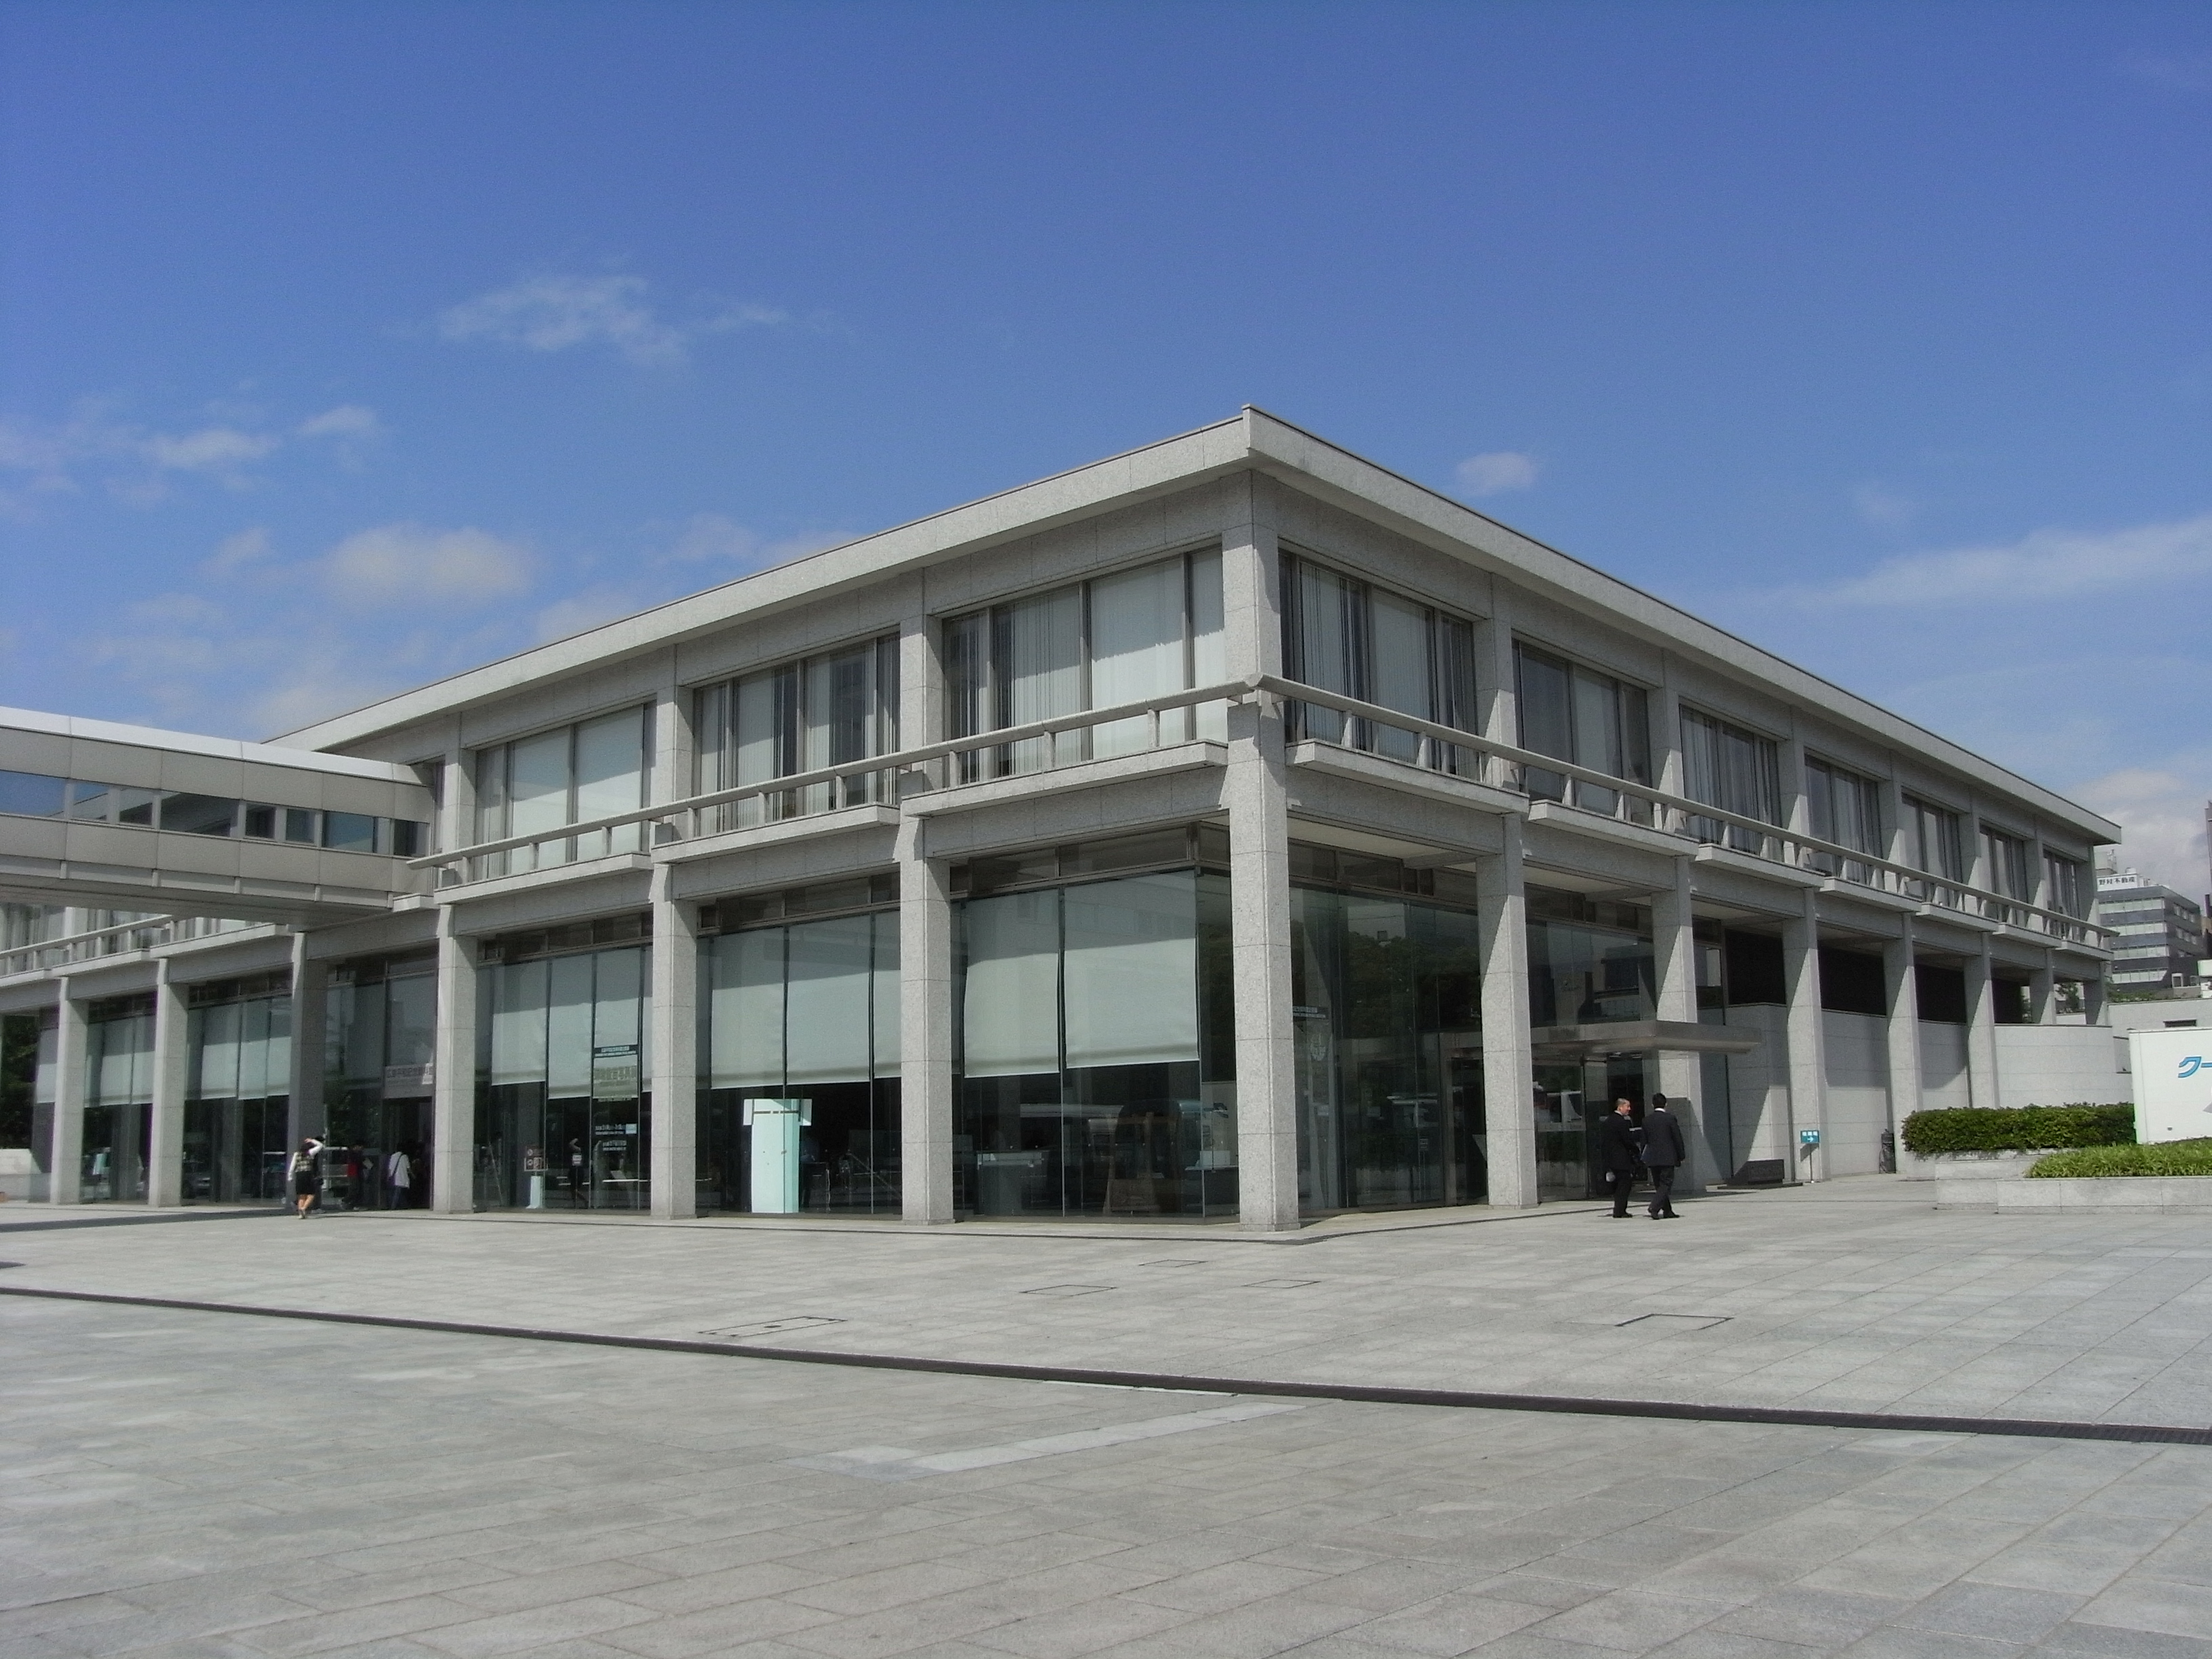 File:Hiroshima Peace Memorial Museum 2008 03.JPG